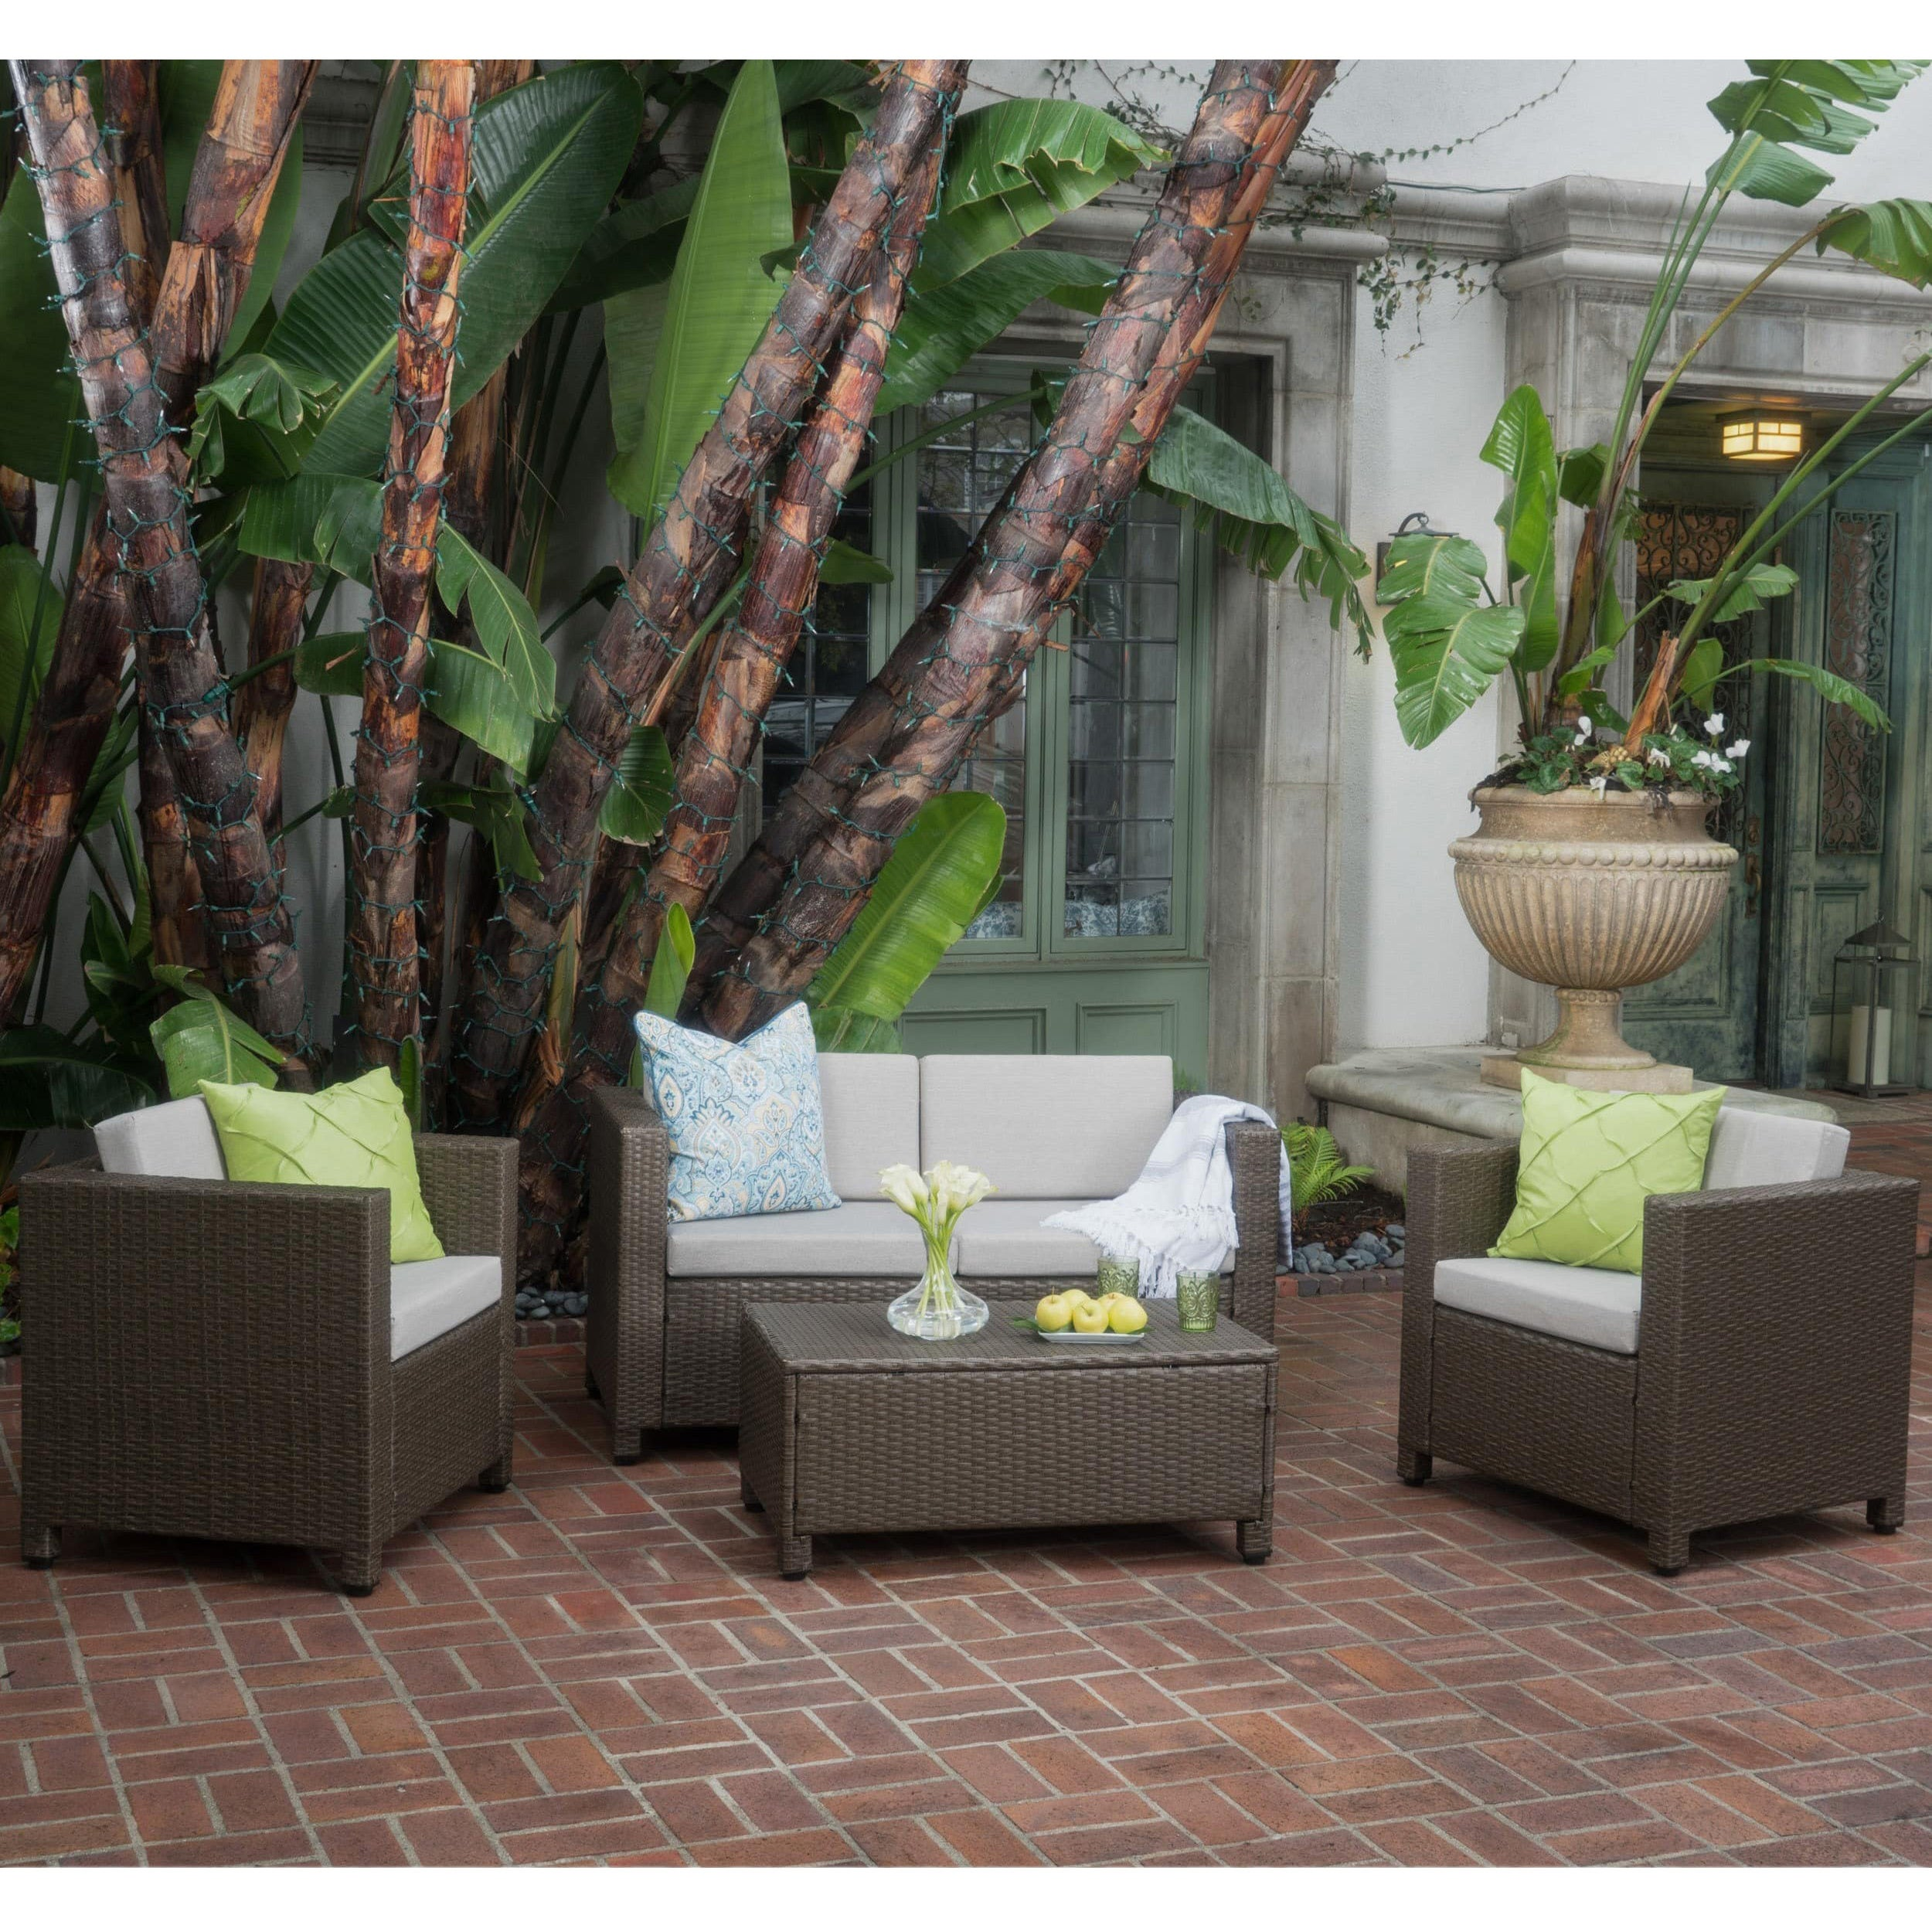 christopher knight home puerta grey outdoor wicker sofa set. Puerta Outdoor 4-piece Sofa Set By Christopher Knight Home - Free Shipping Today Overstock 14105082 Grey Wicker